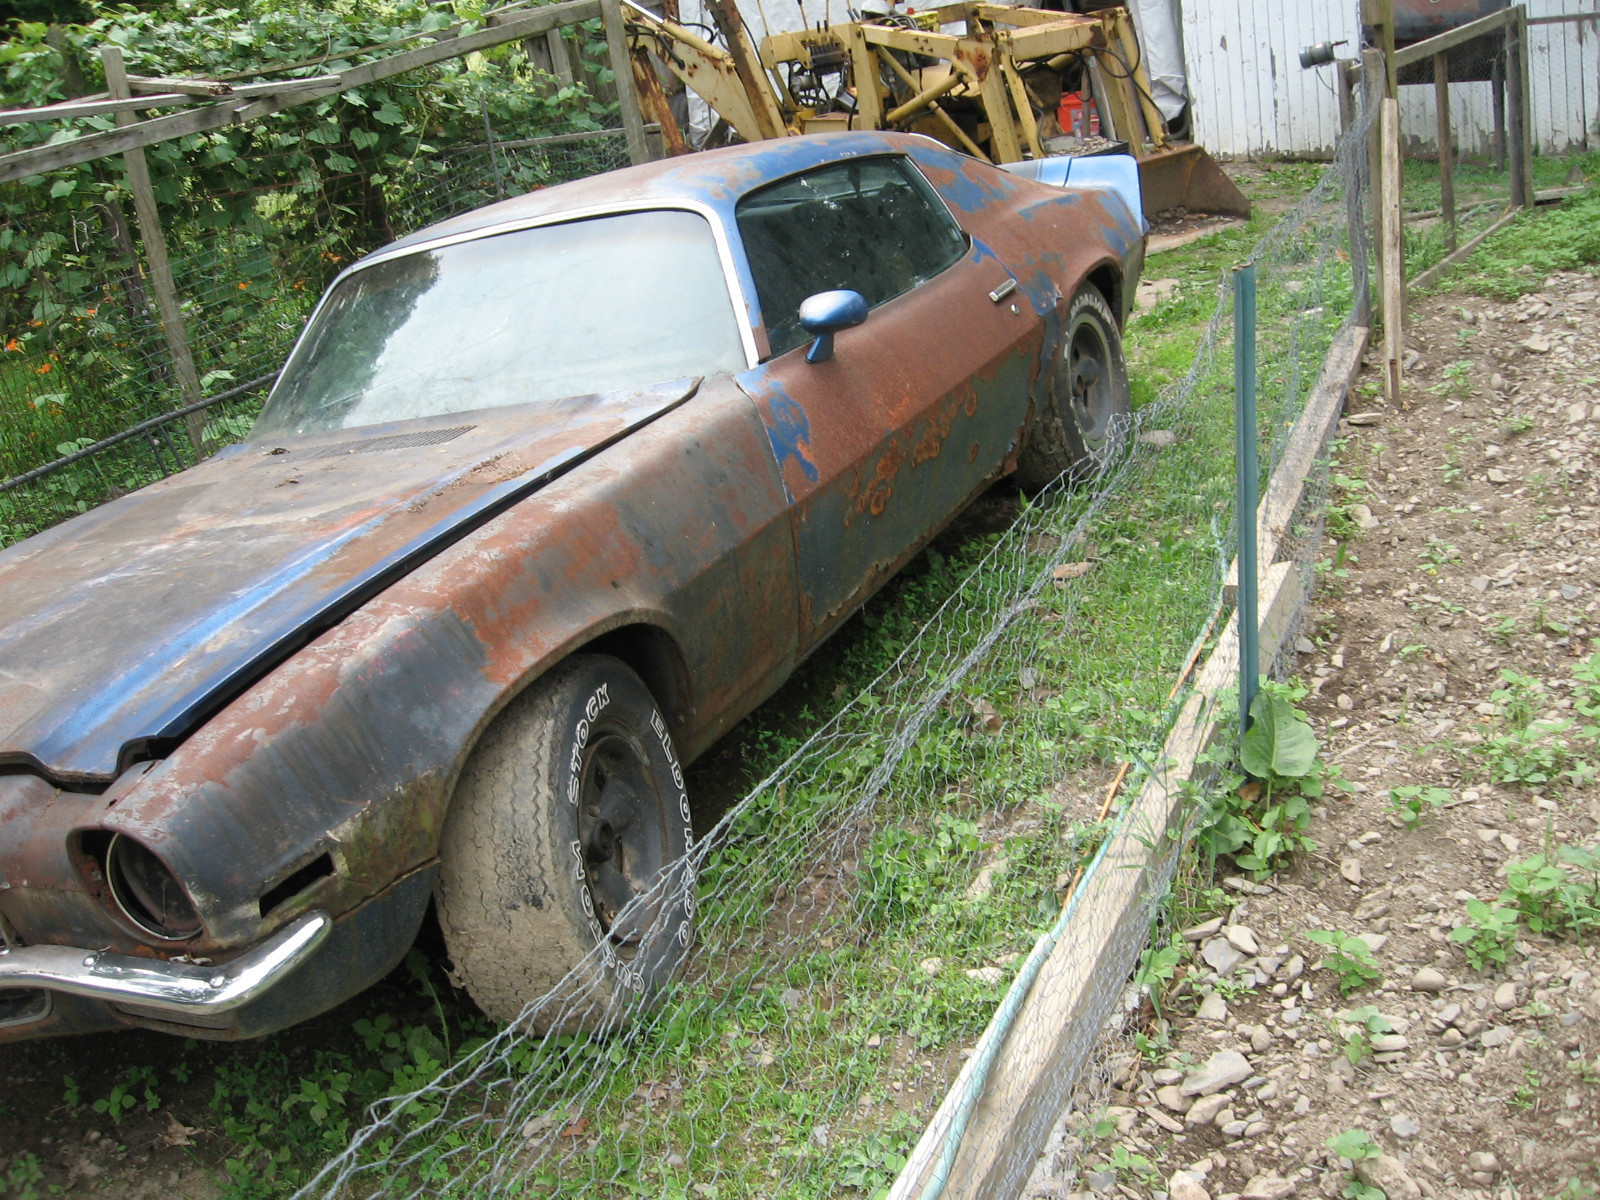 1971 Camaro For Sale Craigslist Pictures To Pin On